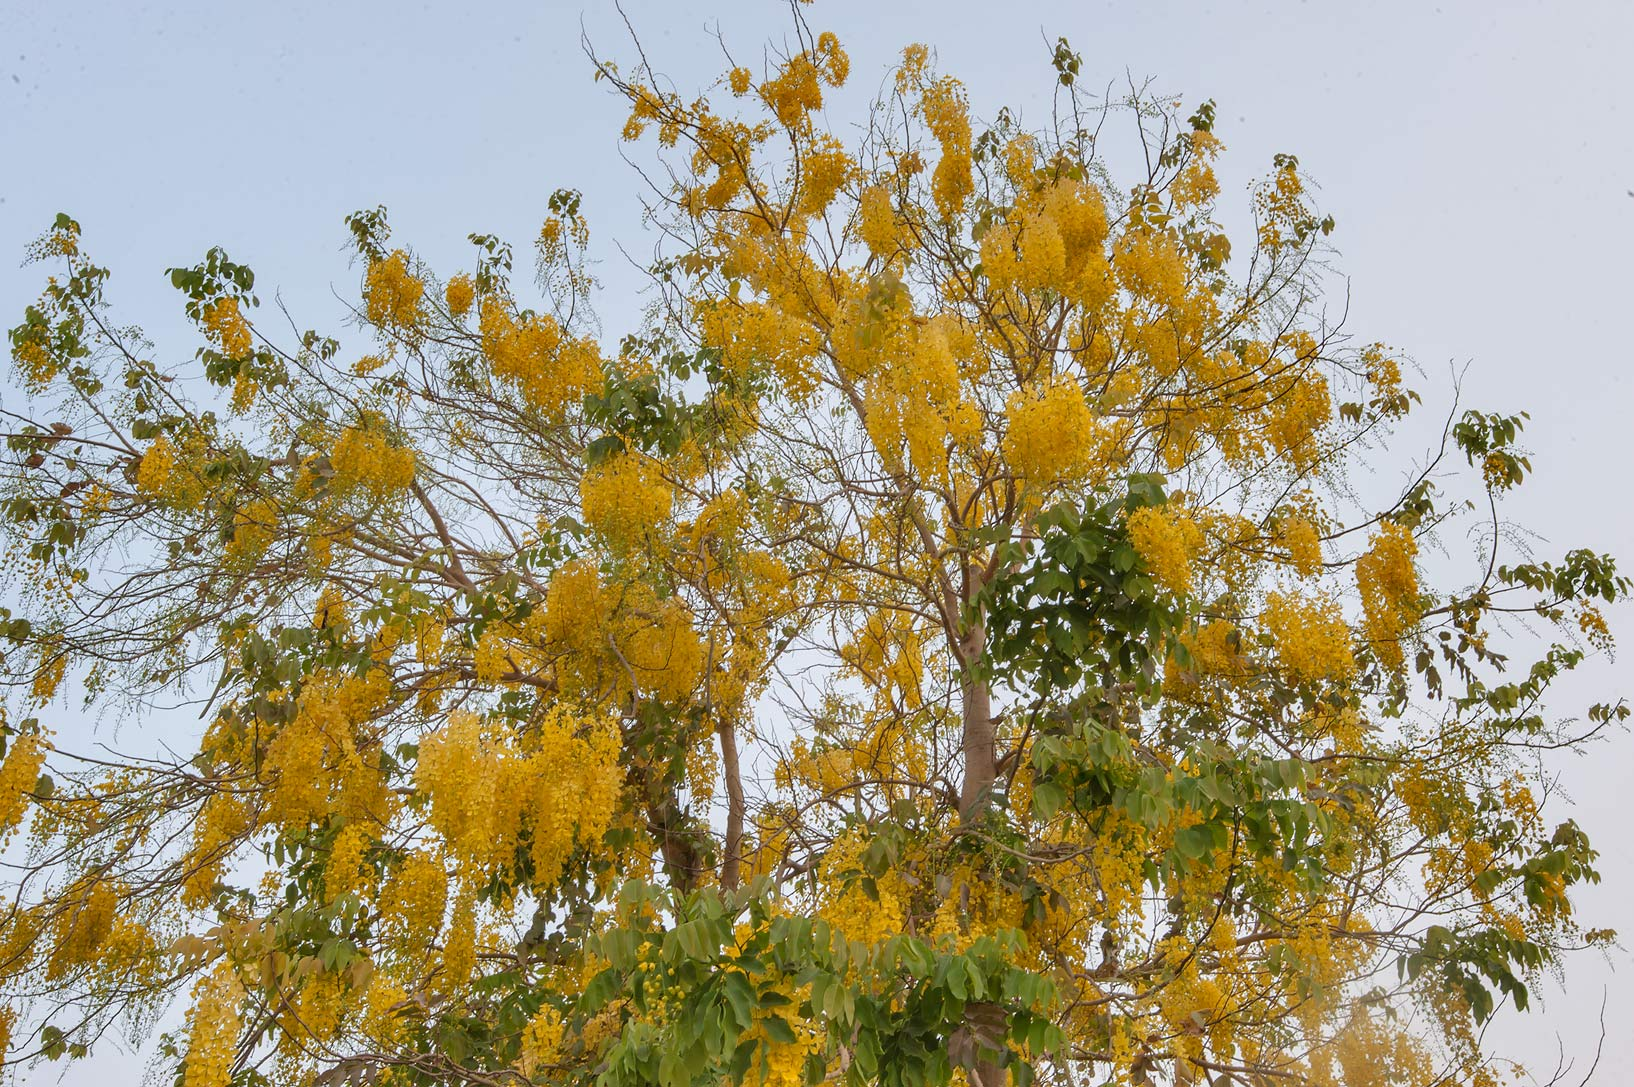 Golden shower tree (Cassia fistula) in bloom in Aspire Park. Doha, Qatar